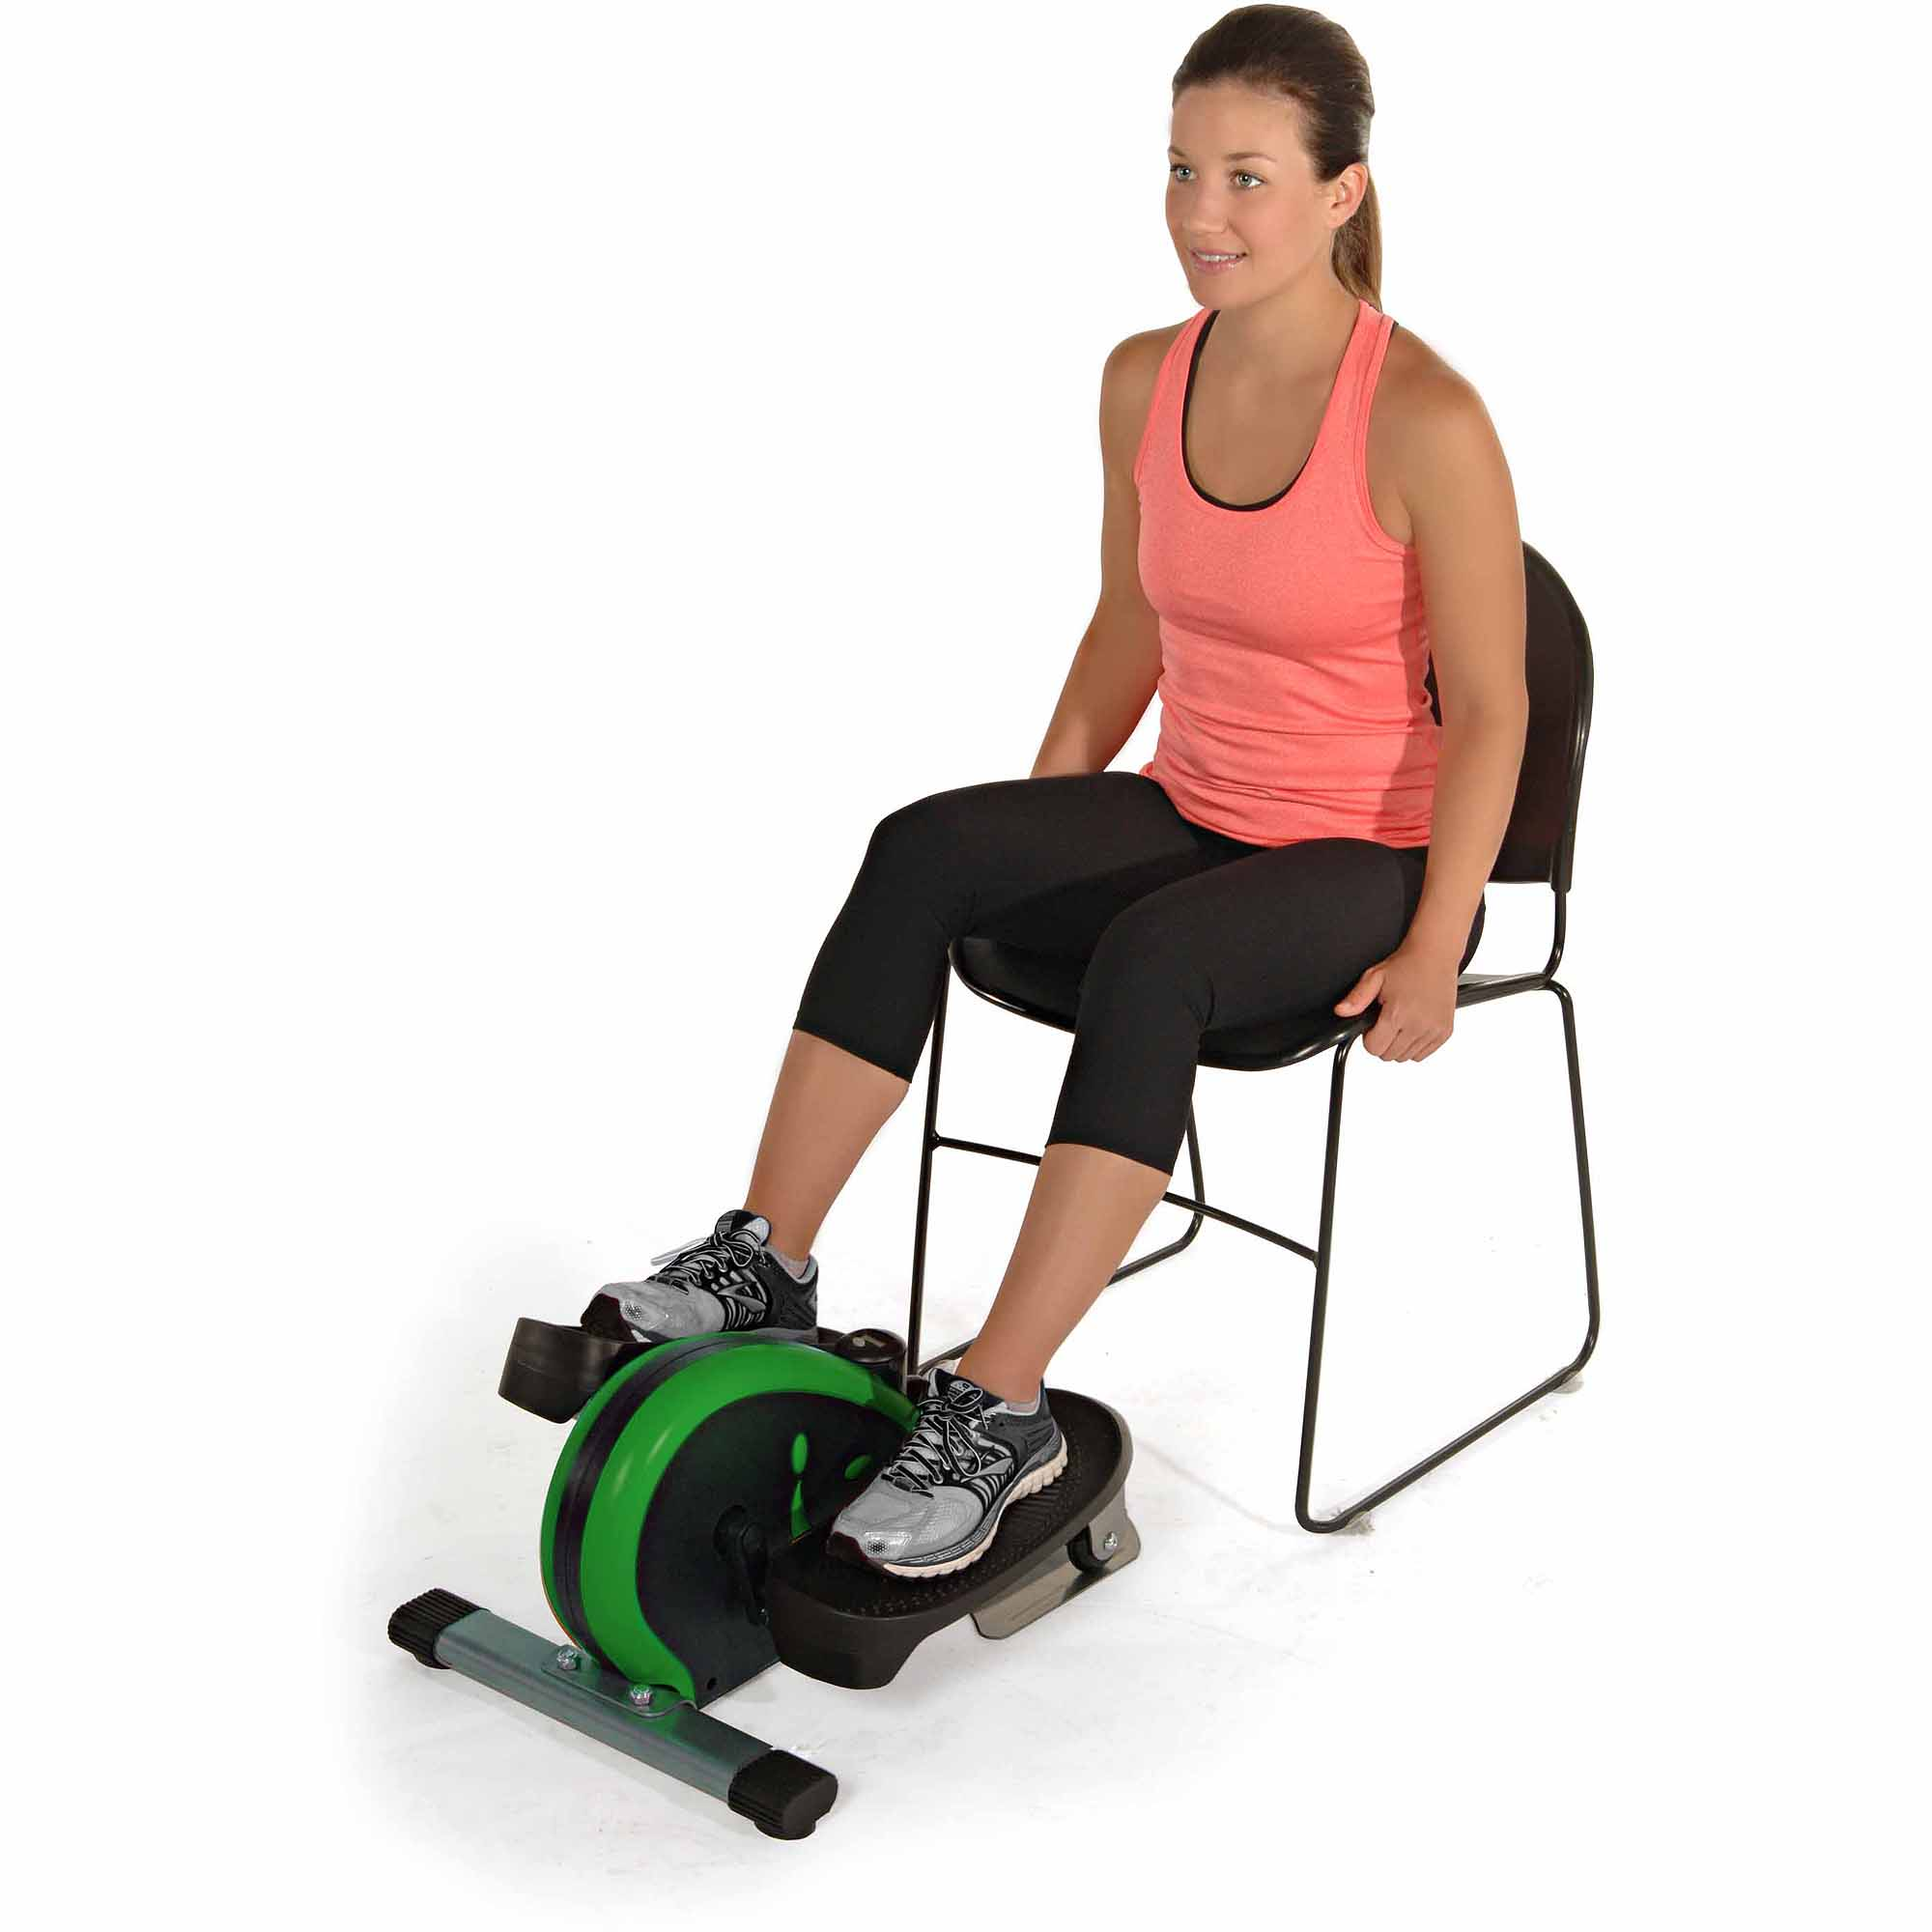 Stamina InMotion Elliptical, Green